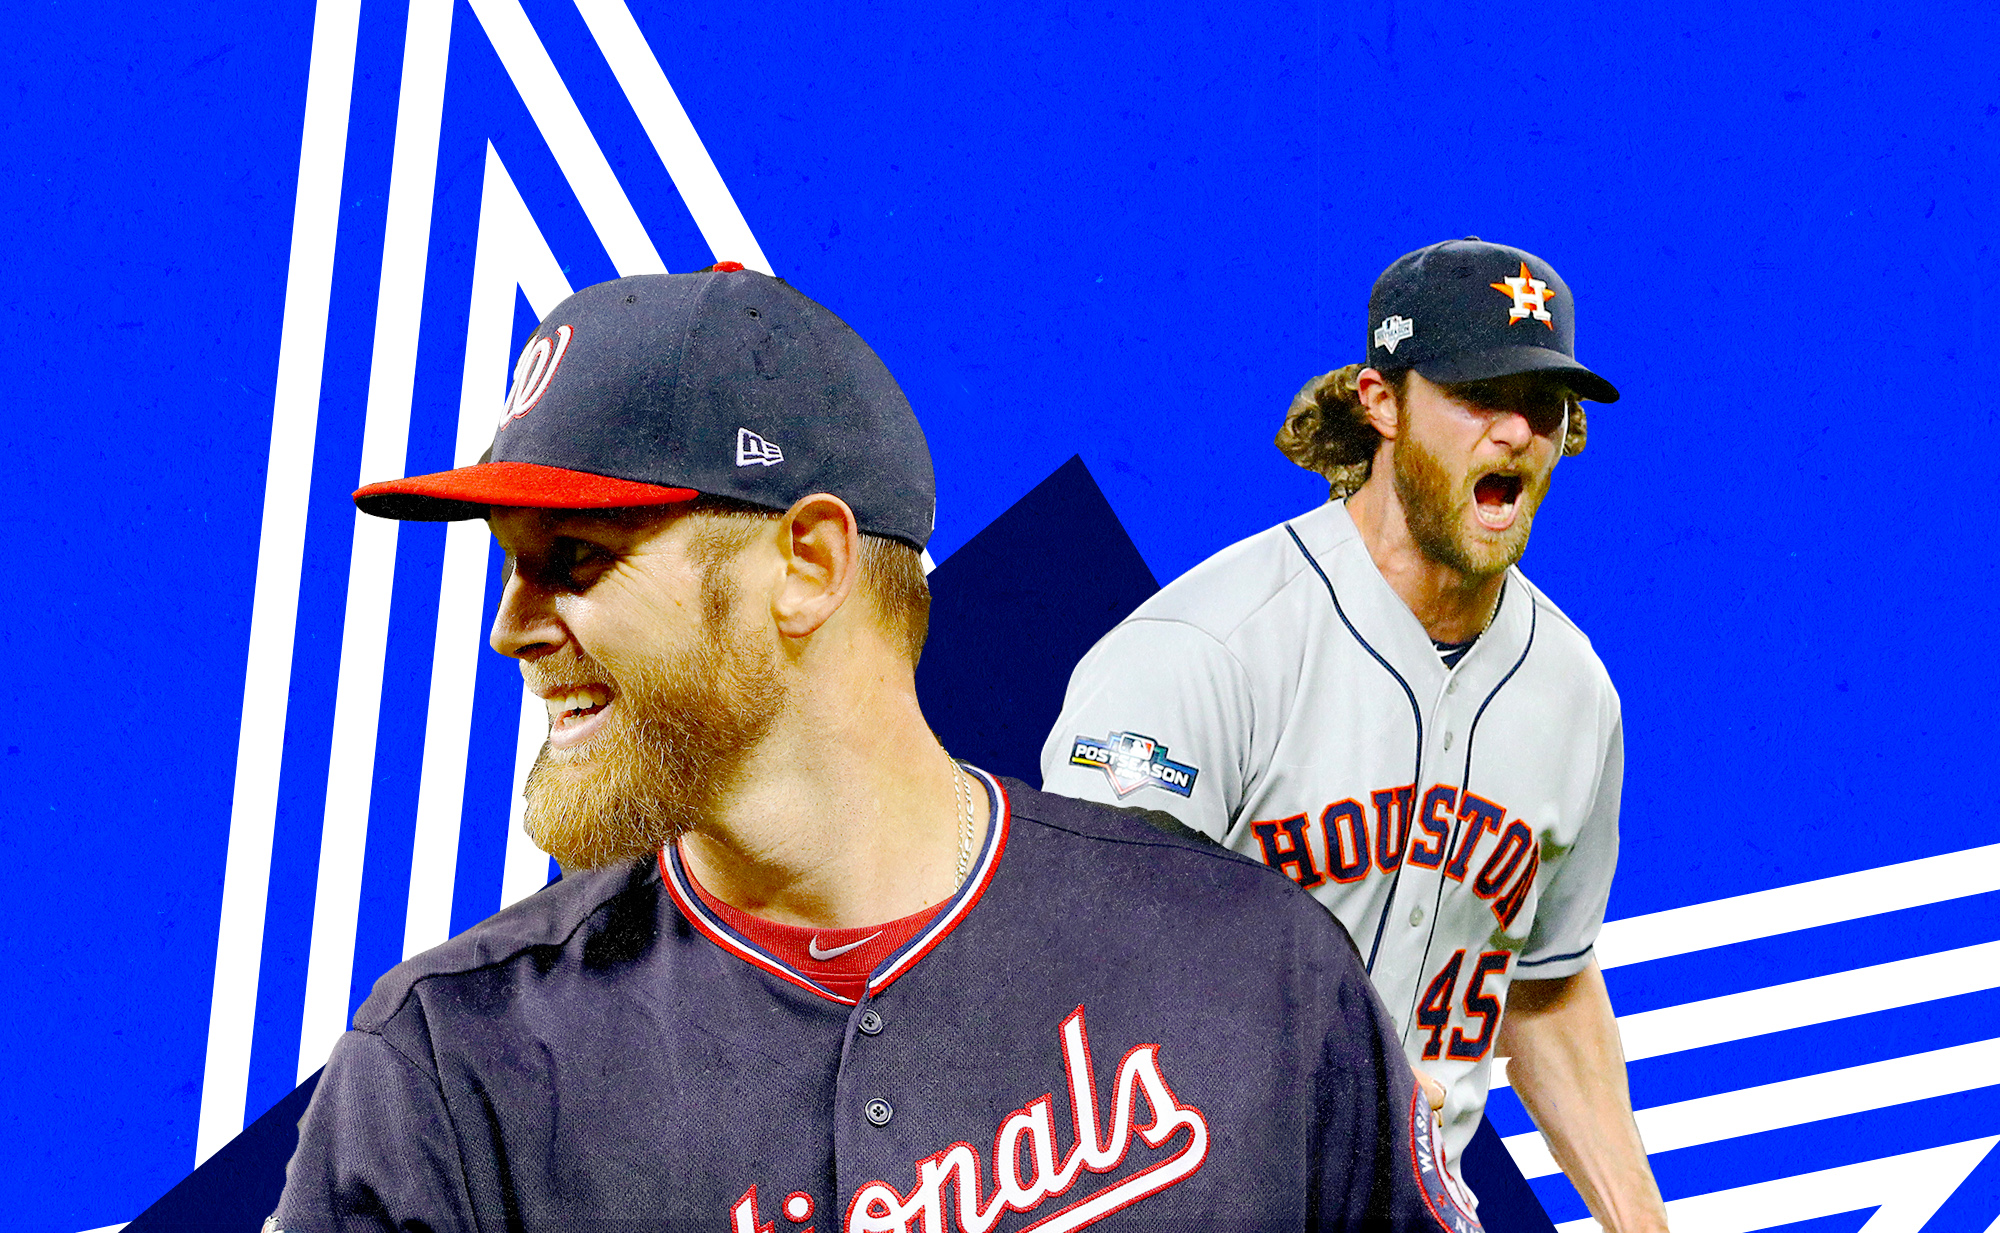 Stephen Strasburg and Gerrit Cole are excellent and photogenic pitchers, and they are both playing in the World Series